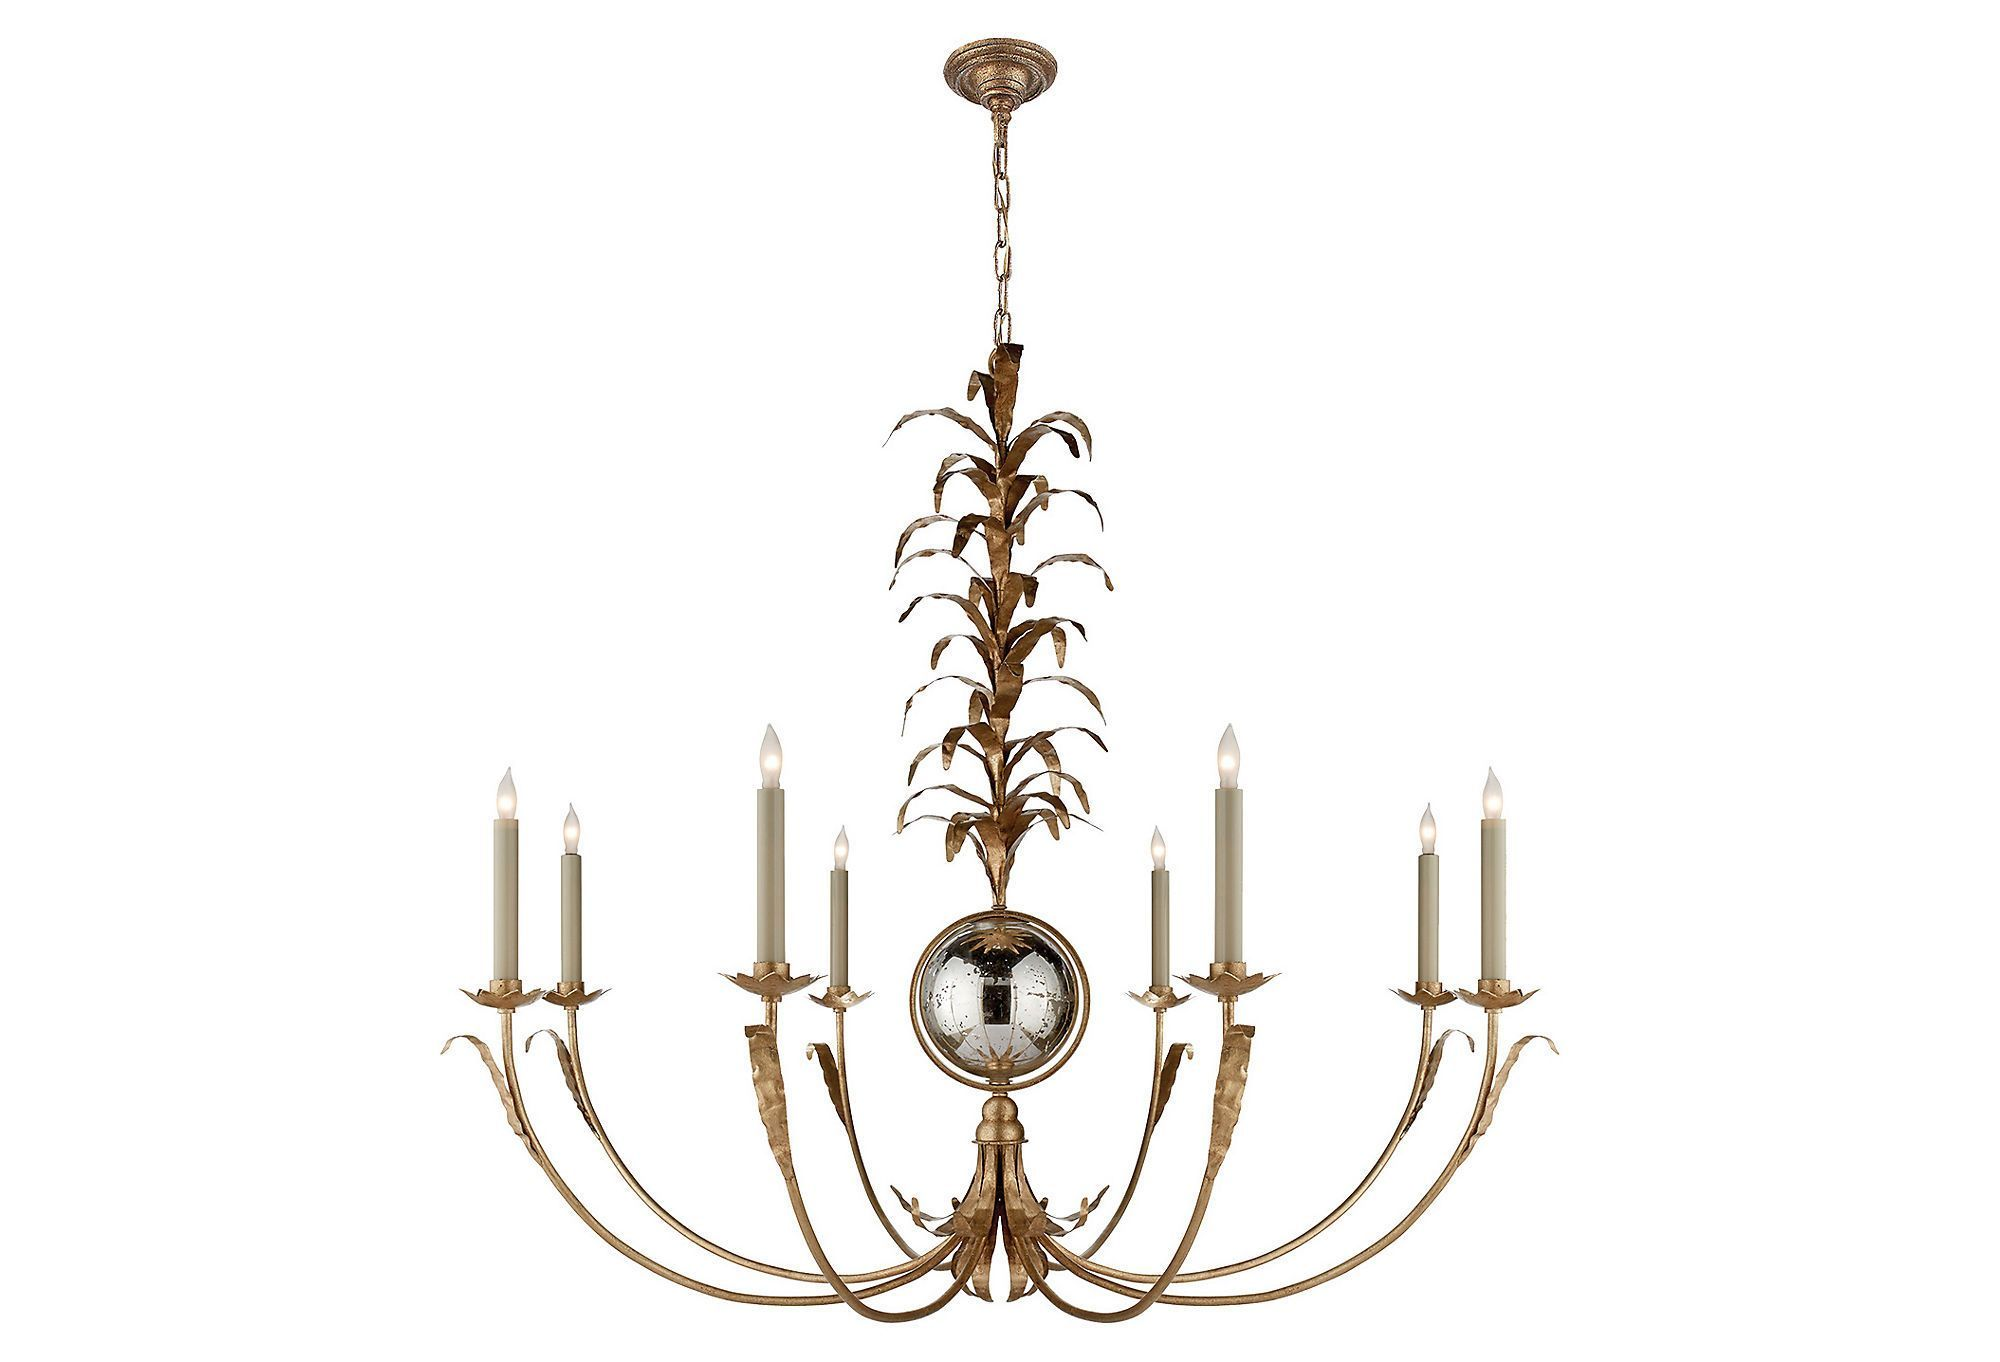 Gramercy chandelier gilded ironfavorite visual comfort co gramercy chandelier gilded ironfavorite visual comfort aloadofball Choice Image